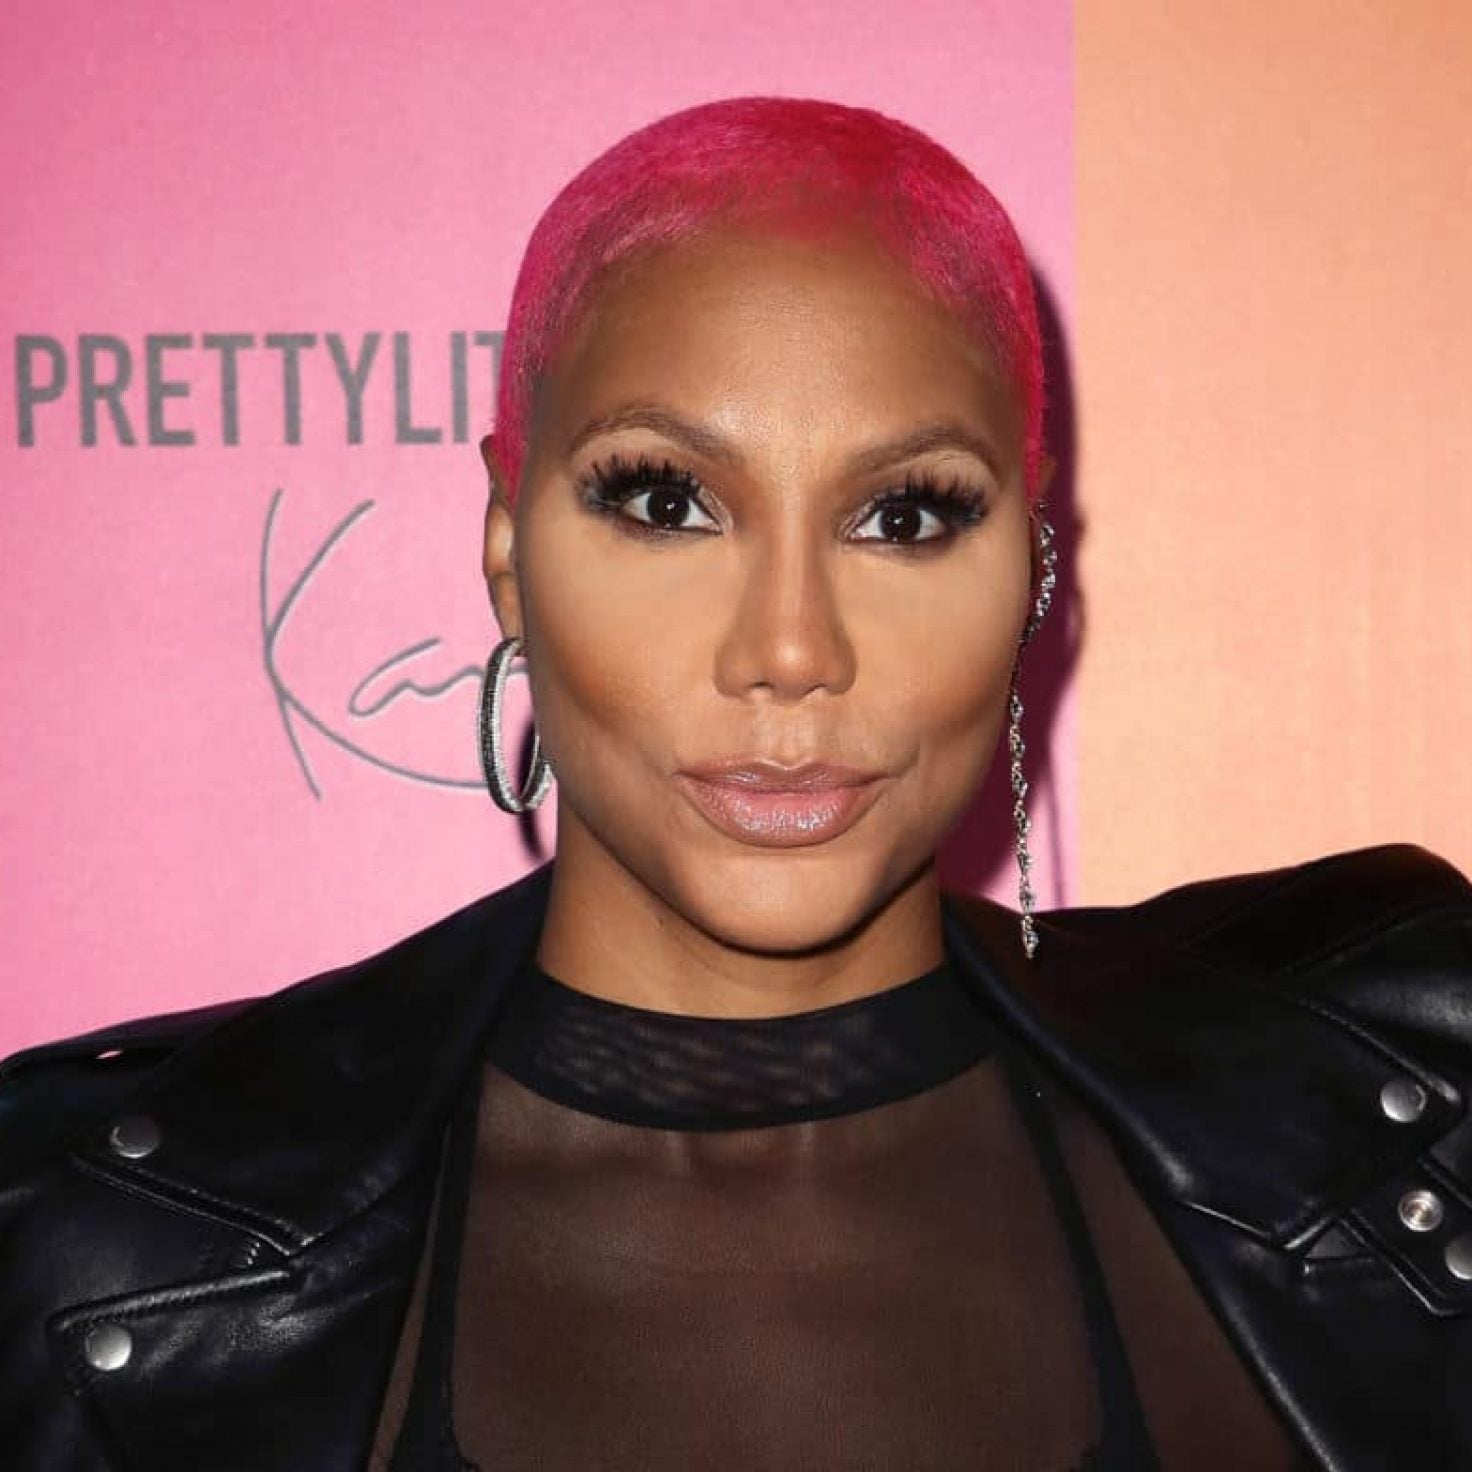 Tamar Braxton Gets Real About Life During Quarantine: 'I'm Masking My Feelings With Food, With Television'